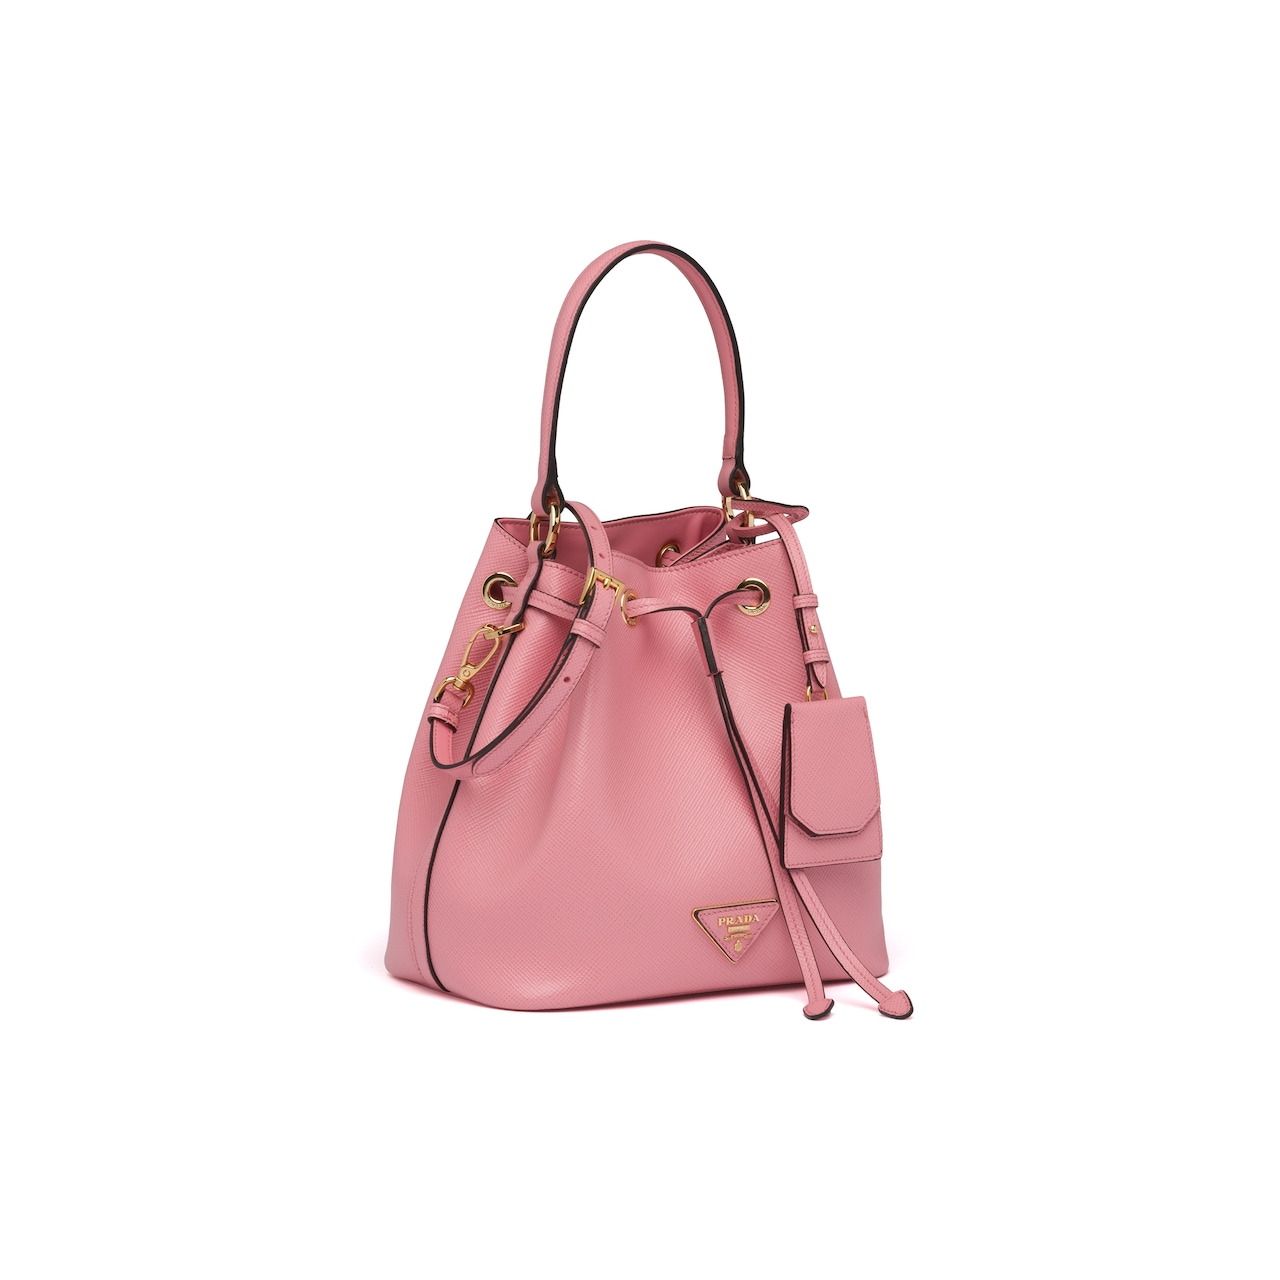 Prada Saffiano leather bucket bag 3